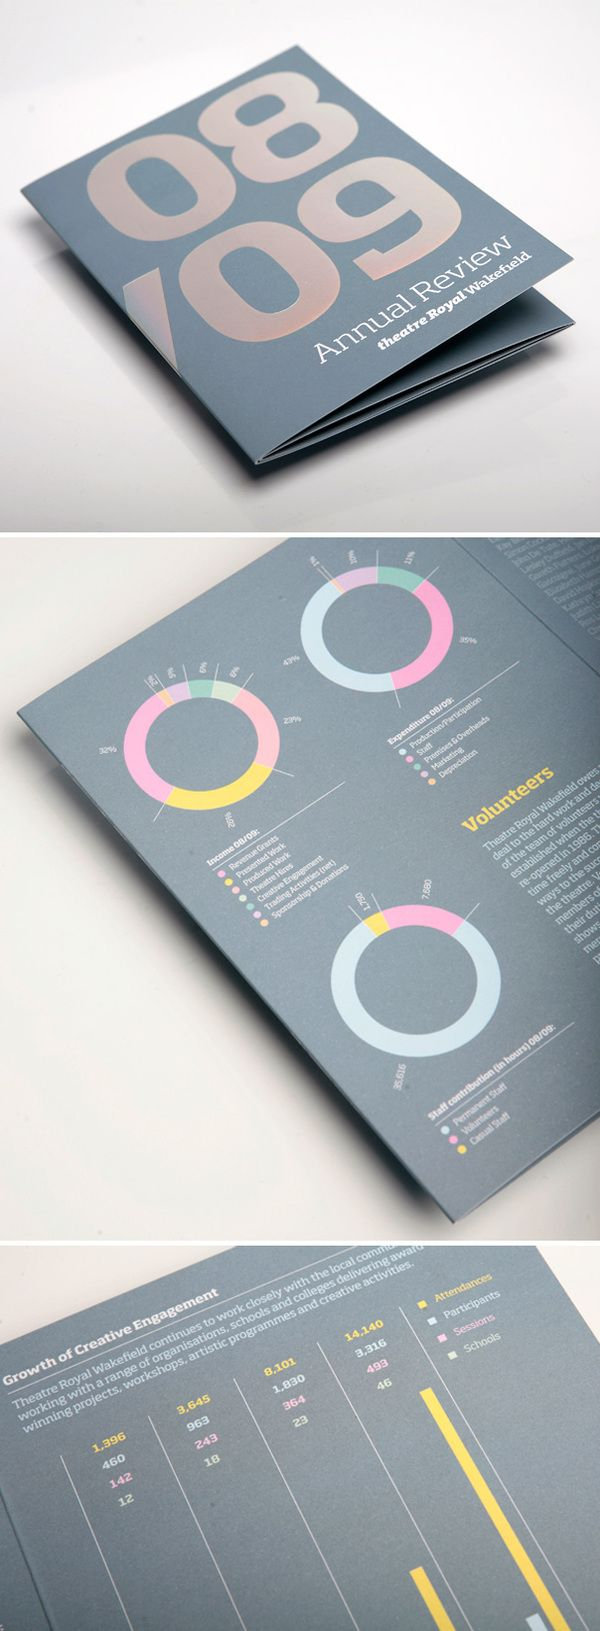 TRW - Annual Review by Analogue , via Behance                                                                                                                                                                                 More